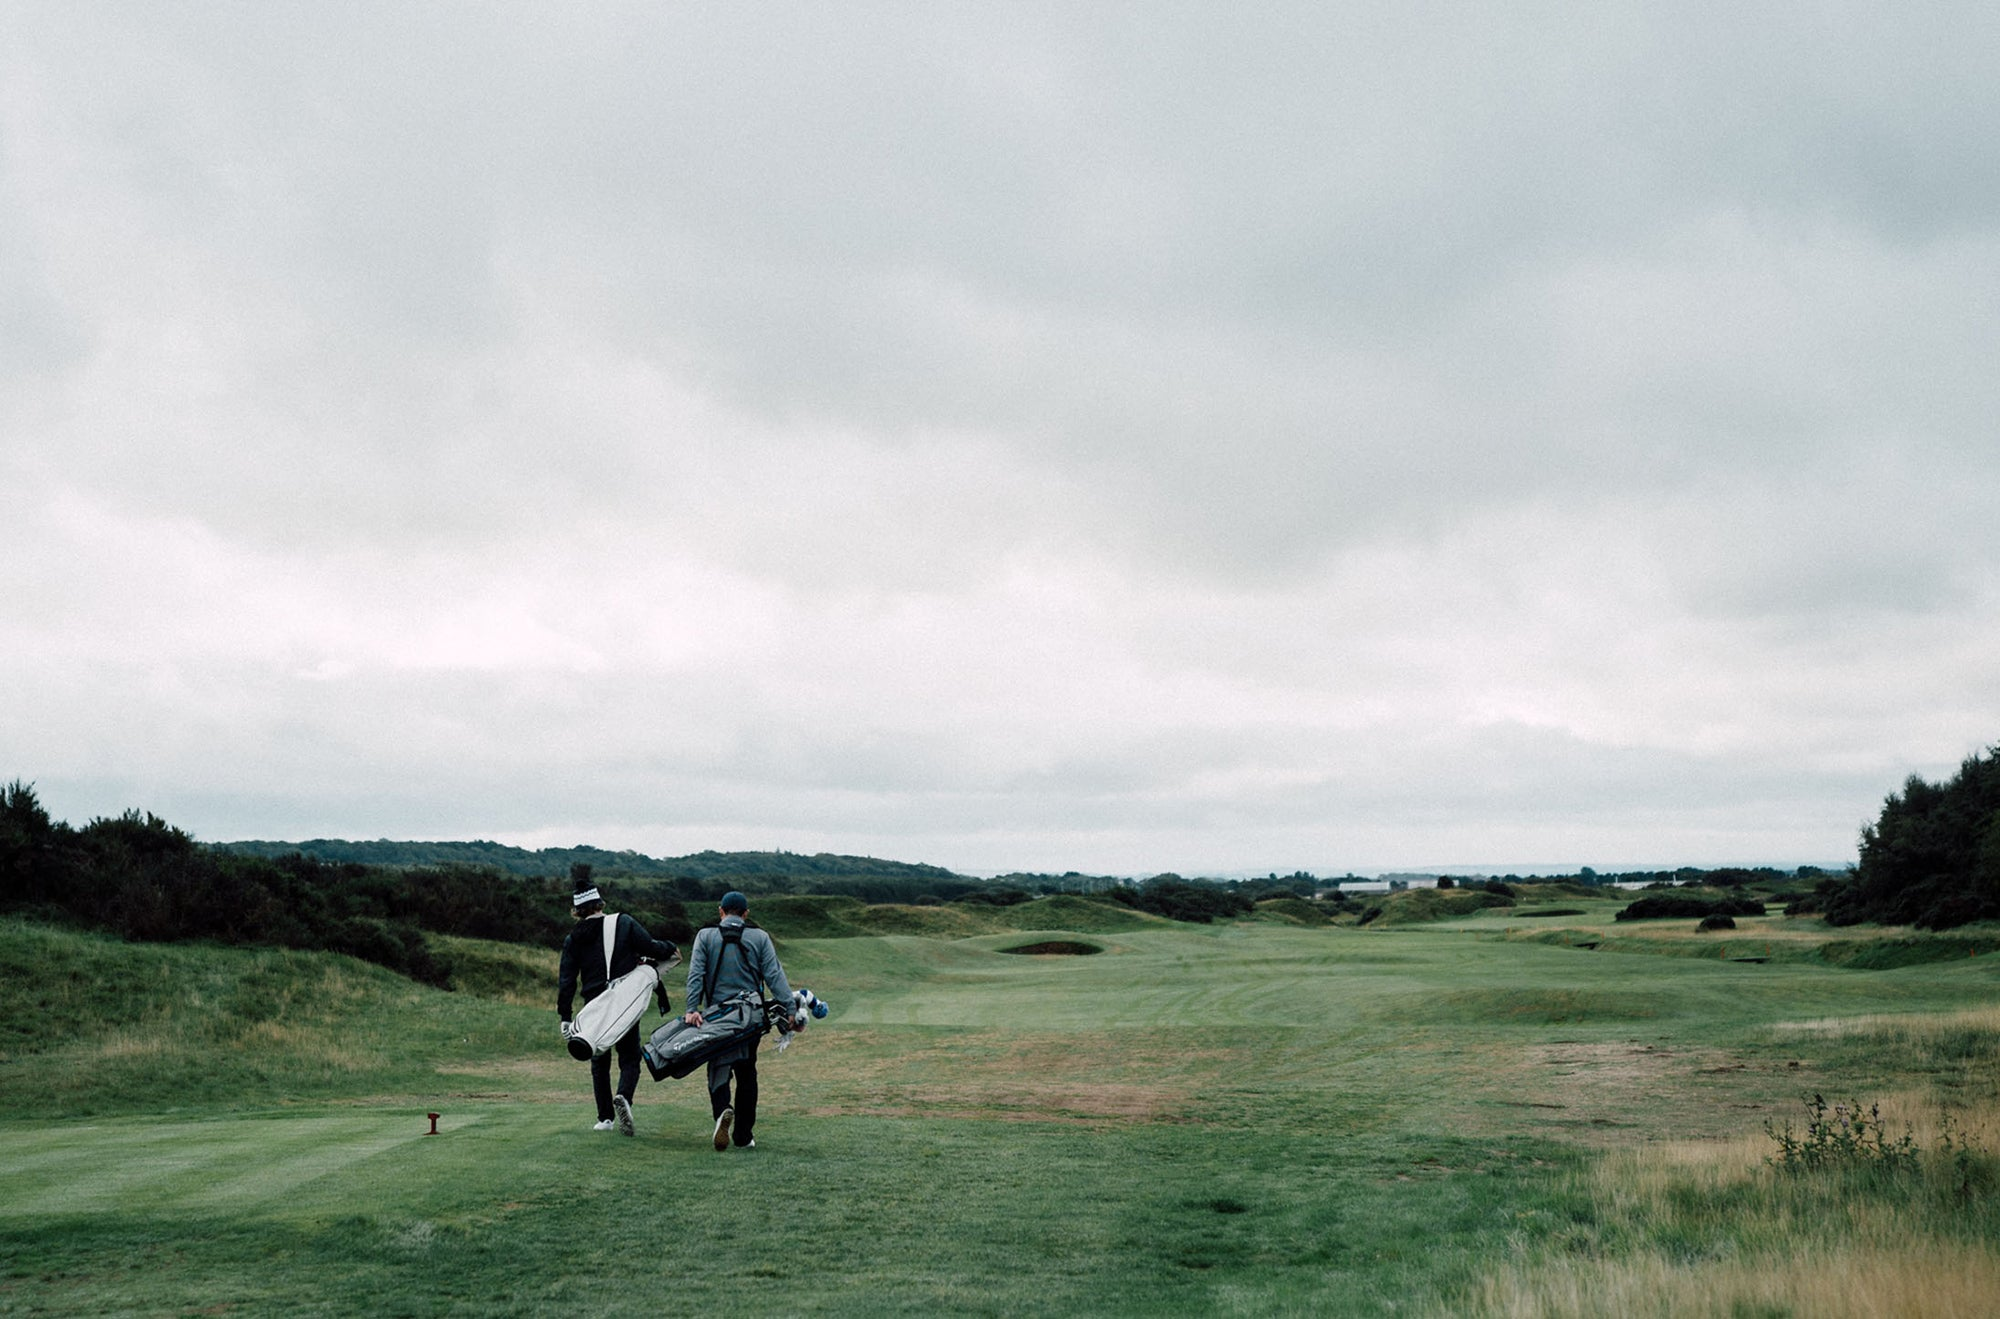 Erik Anders Lang and friend walking on golf course